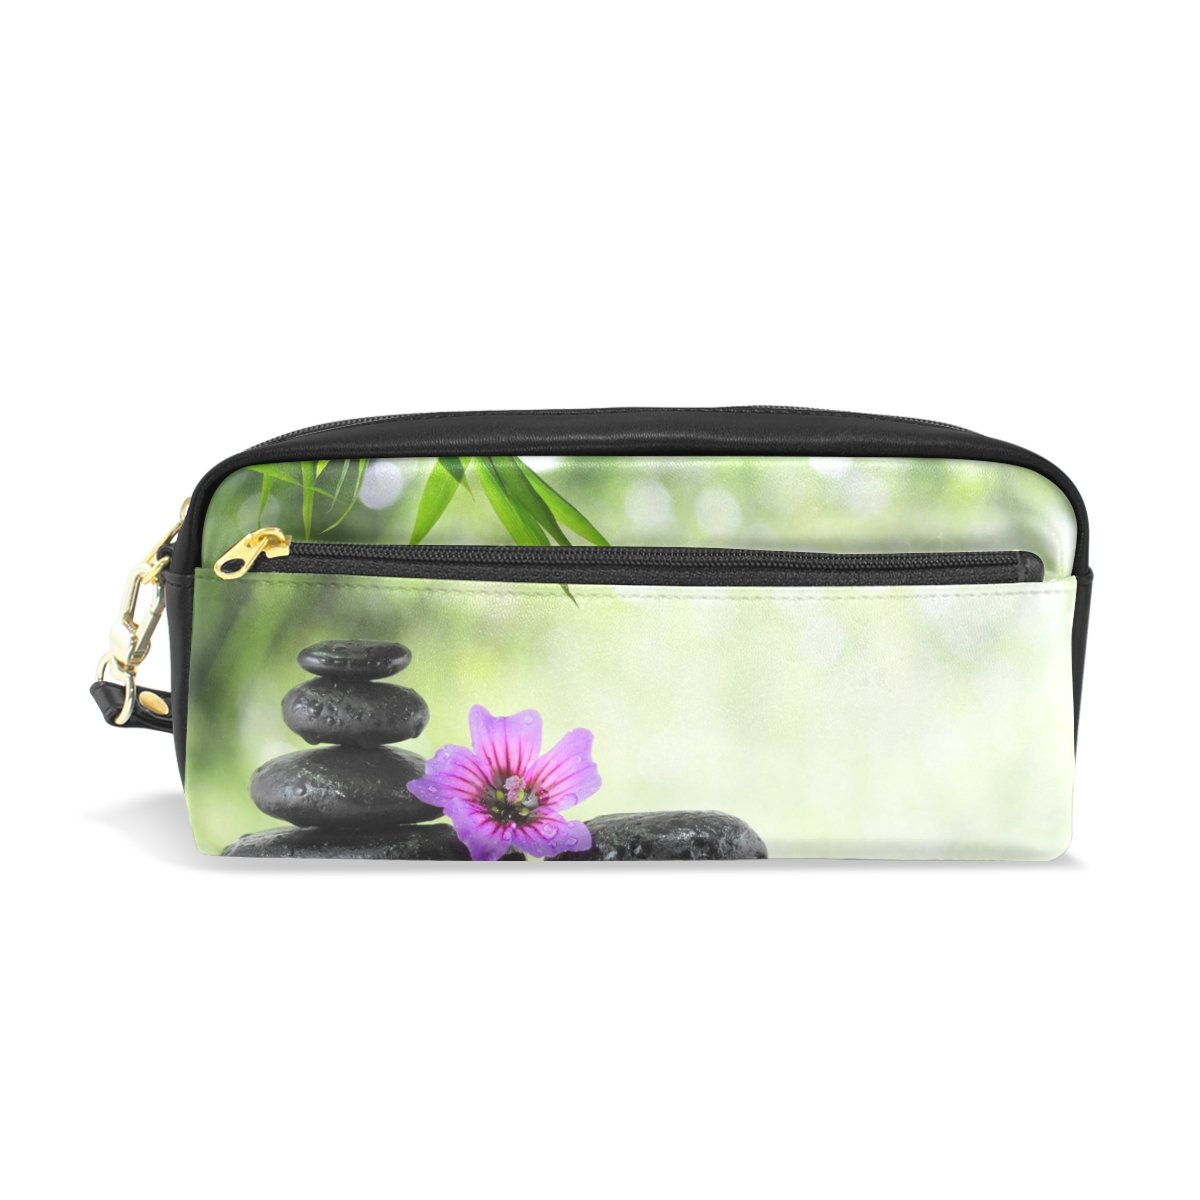 Pencil Holders,DEYYA Green Spa PU Leather Pencil Case Large Capacity School Pen Pouch Dual Use Pen Bag Makeup Pouch for Students or Women